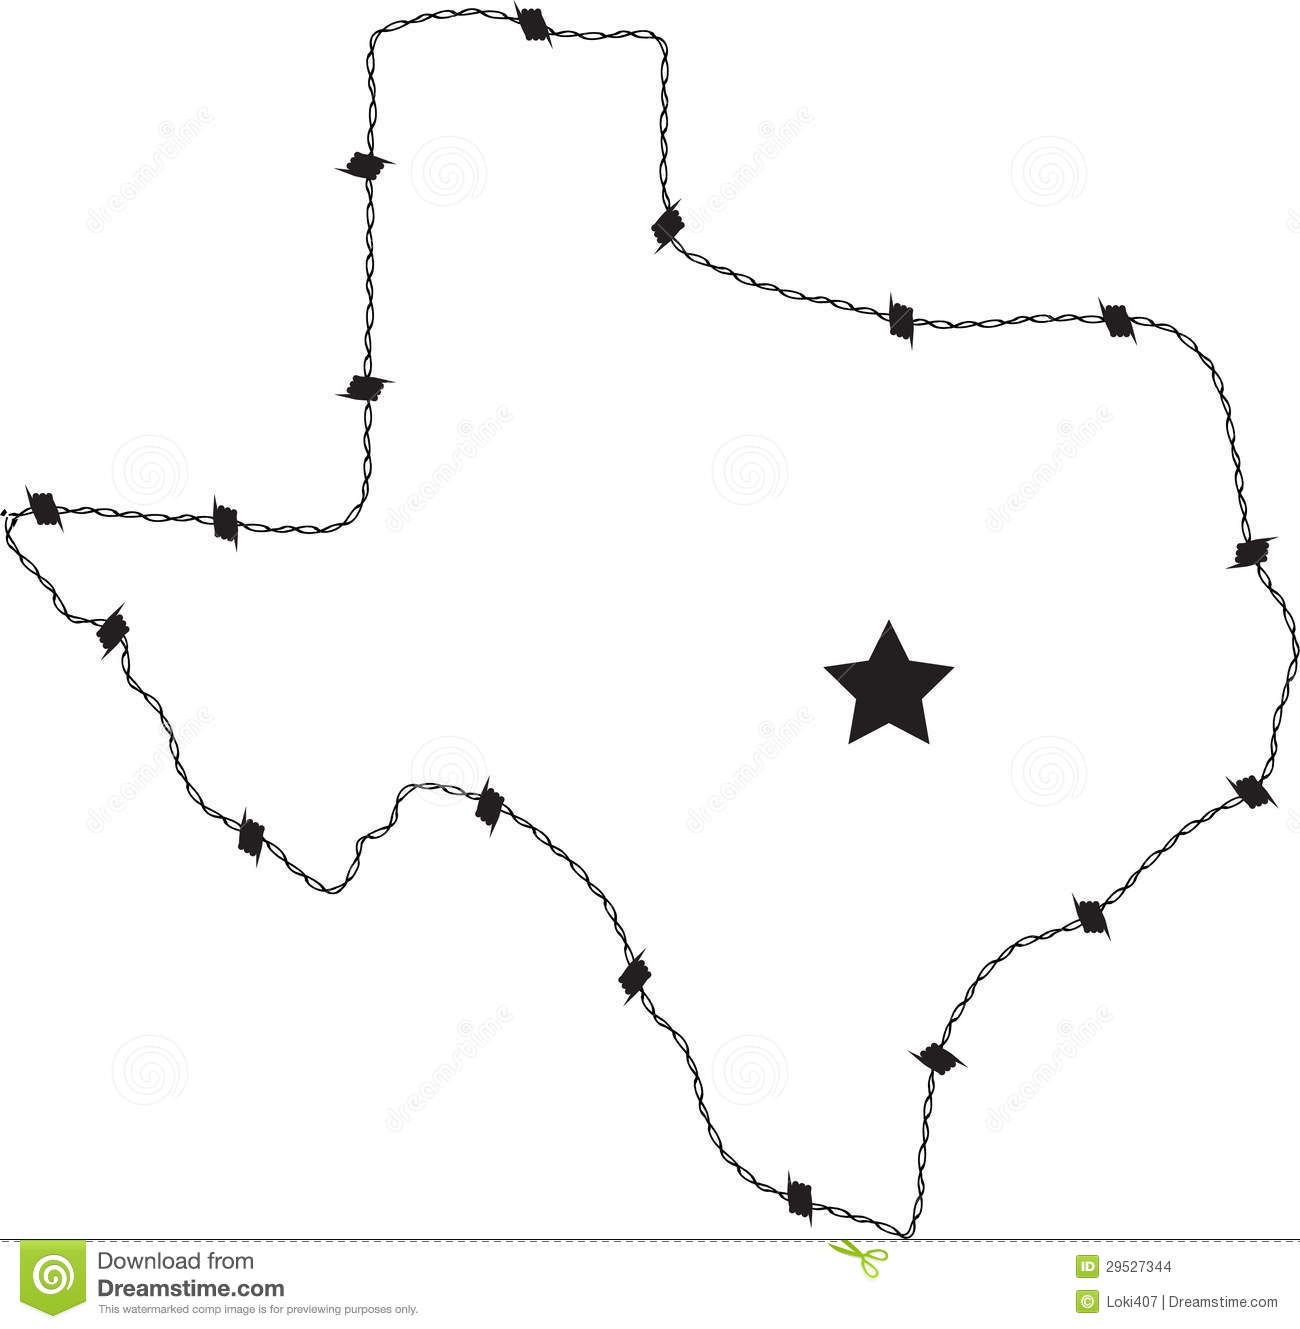 Stock Images Texas Barb Wire Image29527344 moreover Royalty Free Stock Photo Iran Map Shadow Image4274775 further Stock Illustration Beverage Icon Set Illustrated Icons Representing Popular Cold Hot Alcohol Non Alcohol Drinks Black Line Image45552964 furthermore Royalty Free Stock Photography Wild Horse S Head Vector Illustration Image32090547 also Royalty Free Stock Photography Perfume Bottles Vector Icon Set White Background Image35143347. on united states map outline of